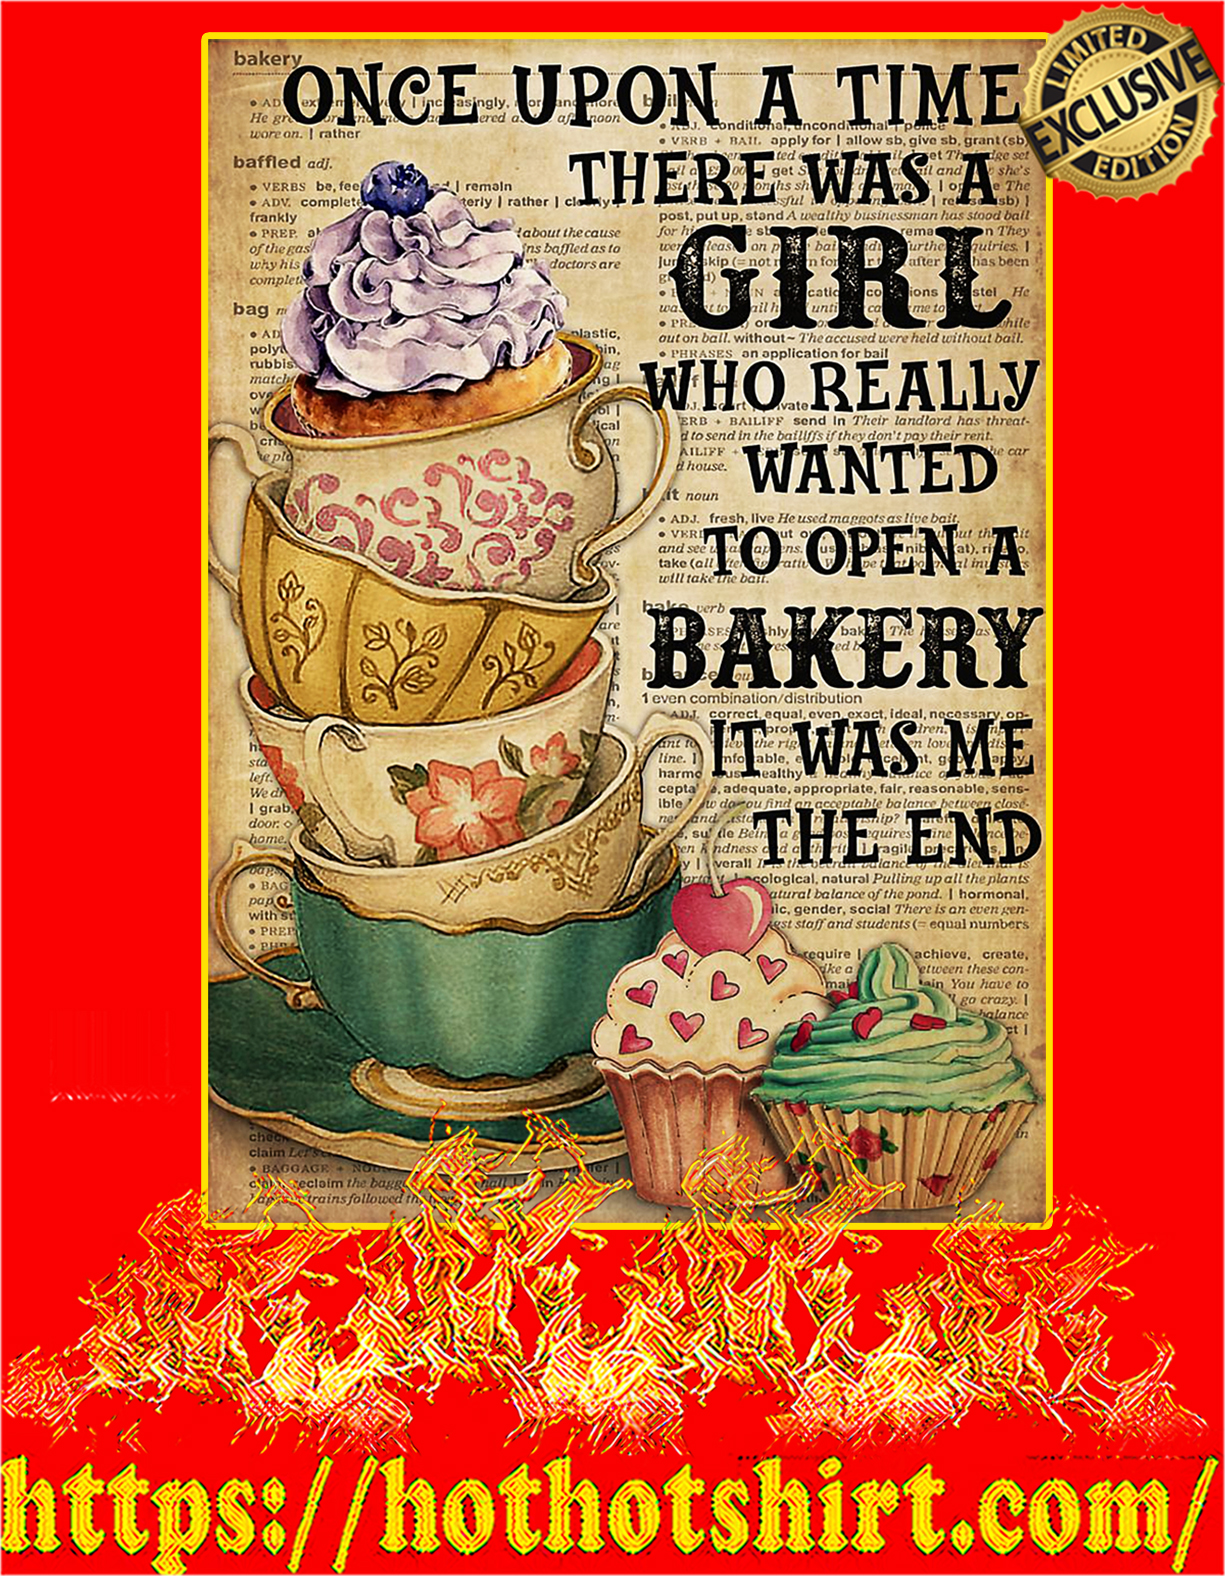 There was a girl who really wanted to open a bakery poster - A4